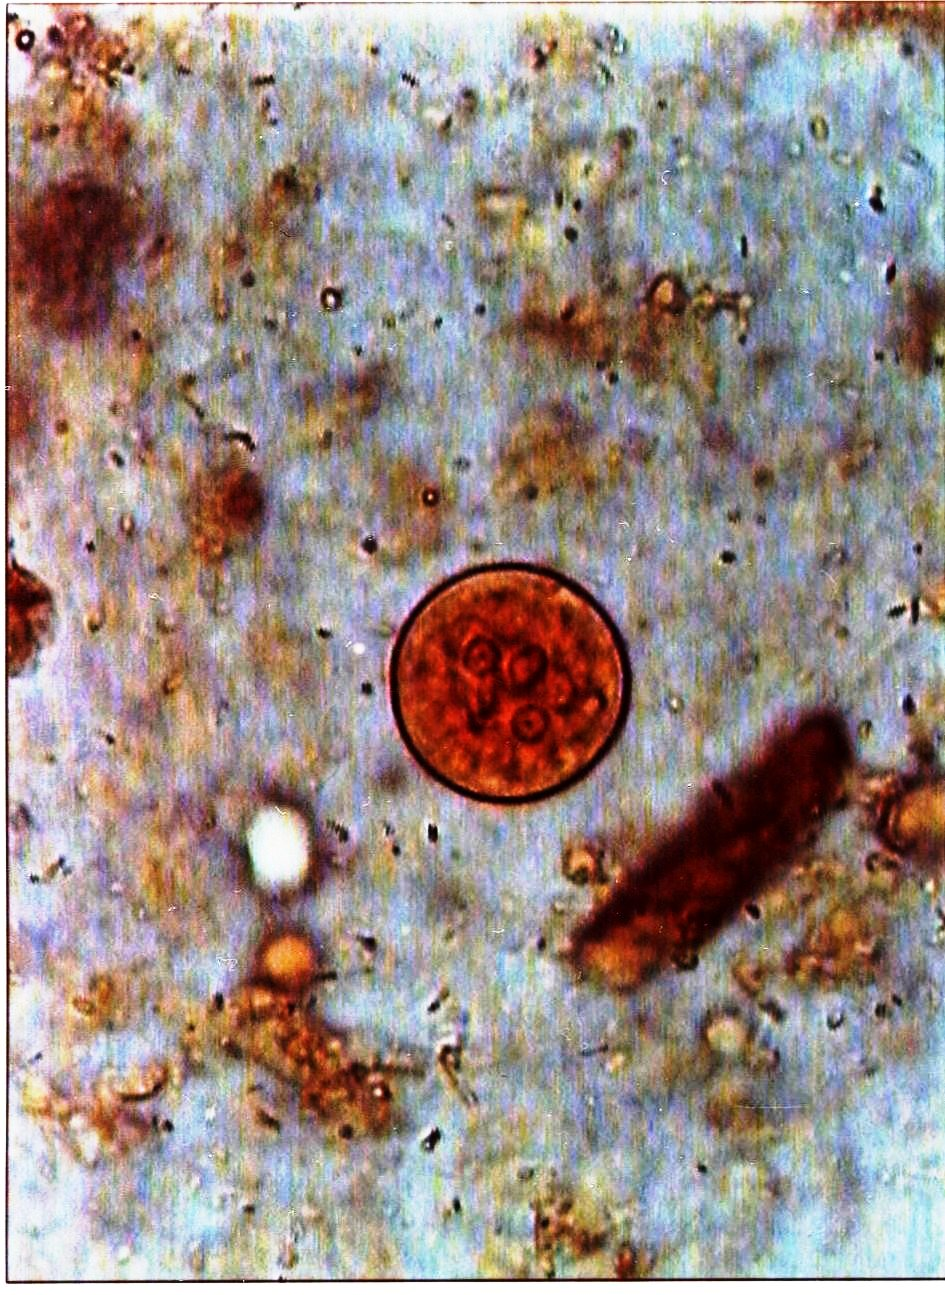 Entamoeba coli cyst : Parasitology Center